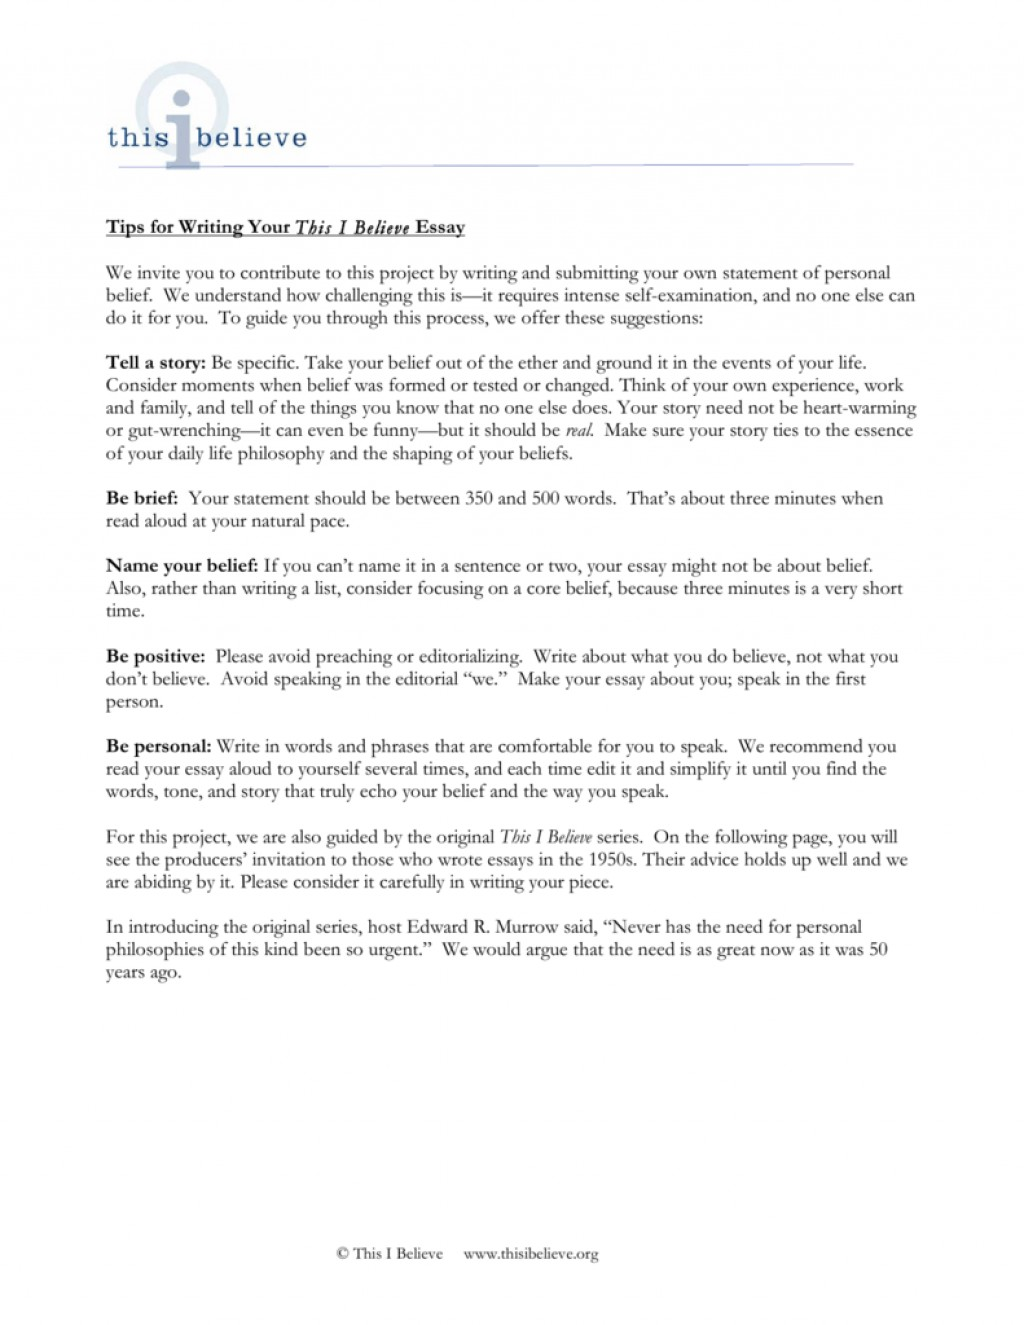 005 Essay Example How To Write This I Believe 008807221 1 Fantastic A Things On What Large